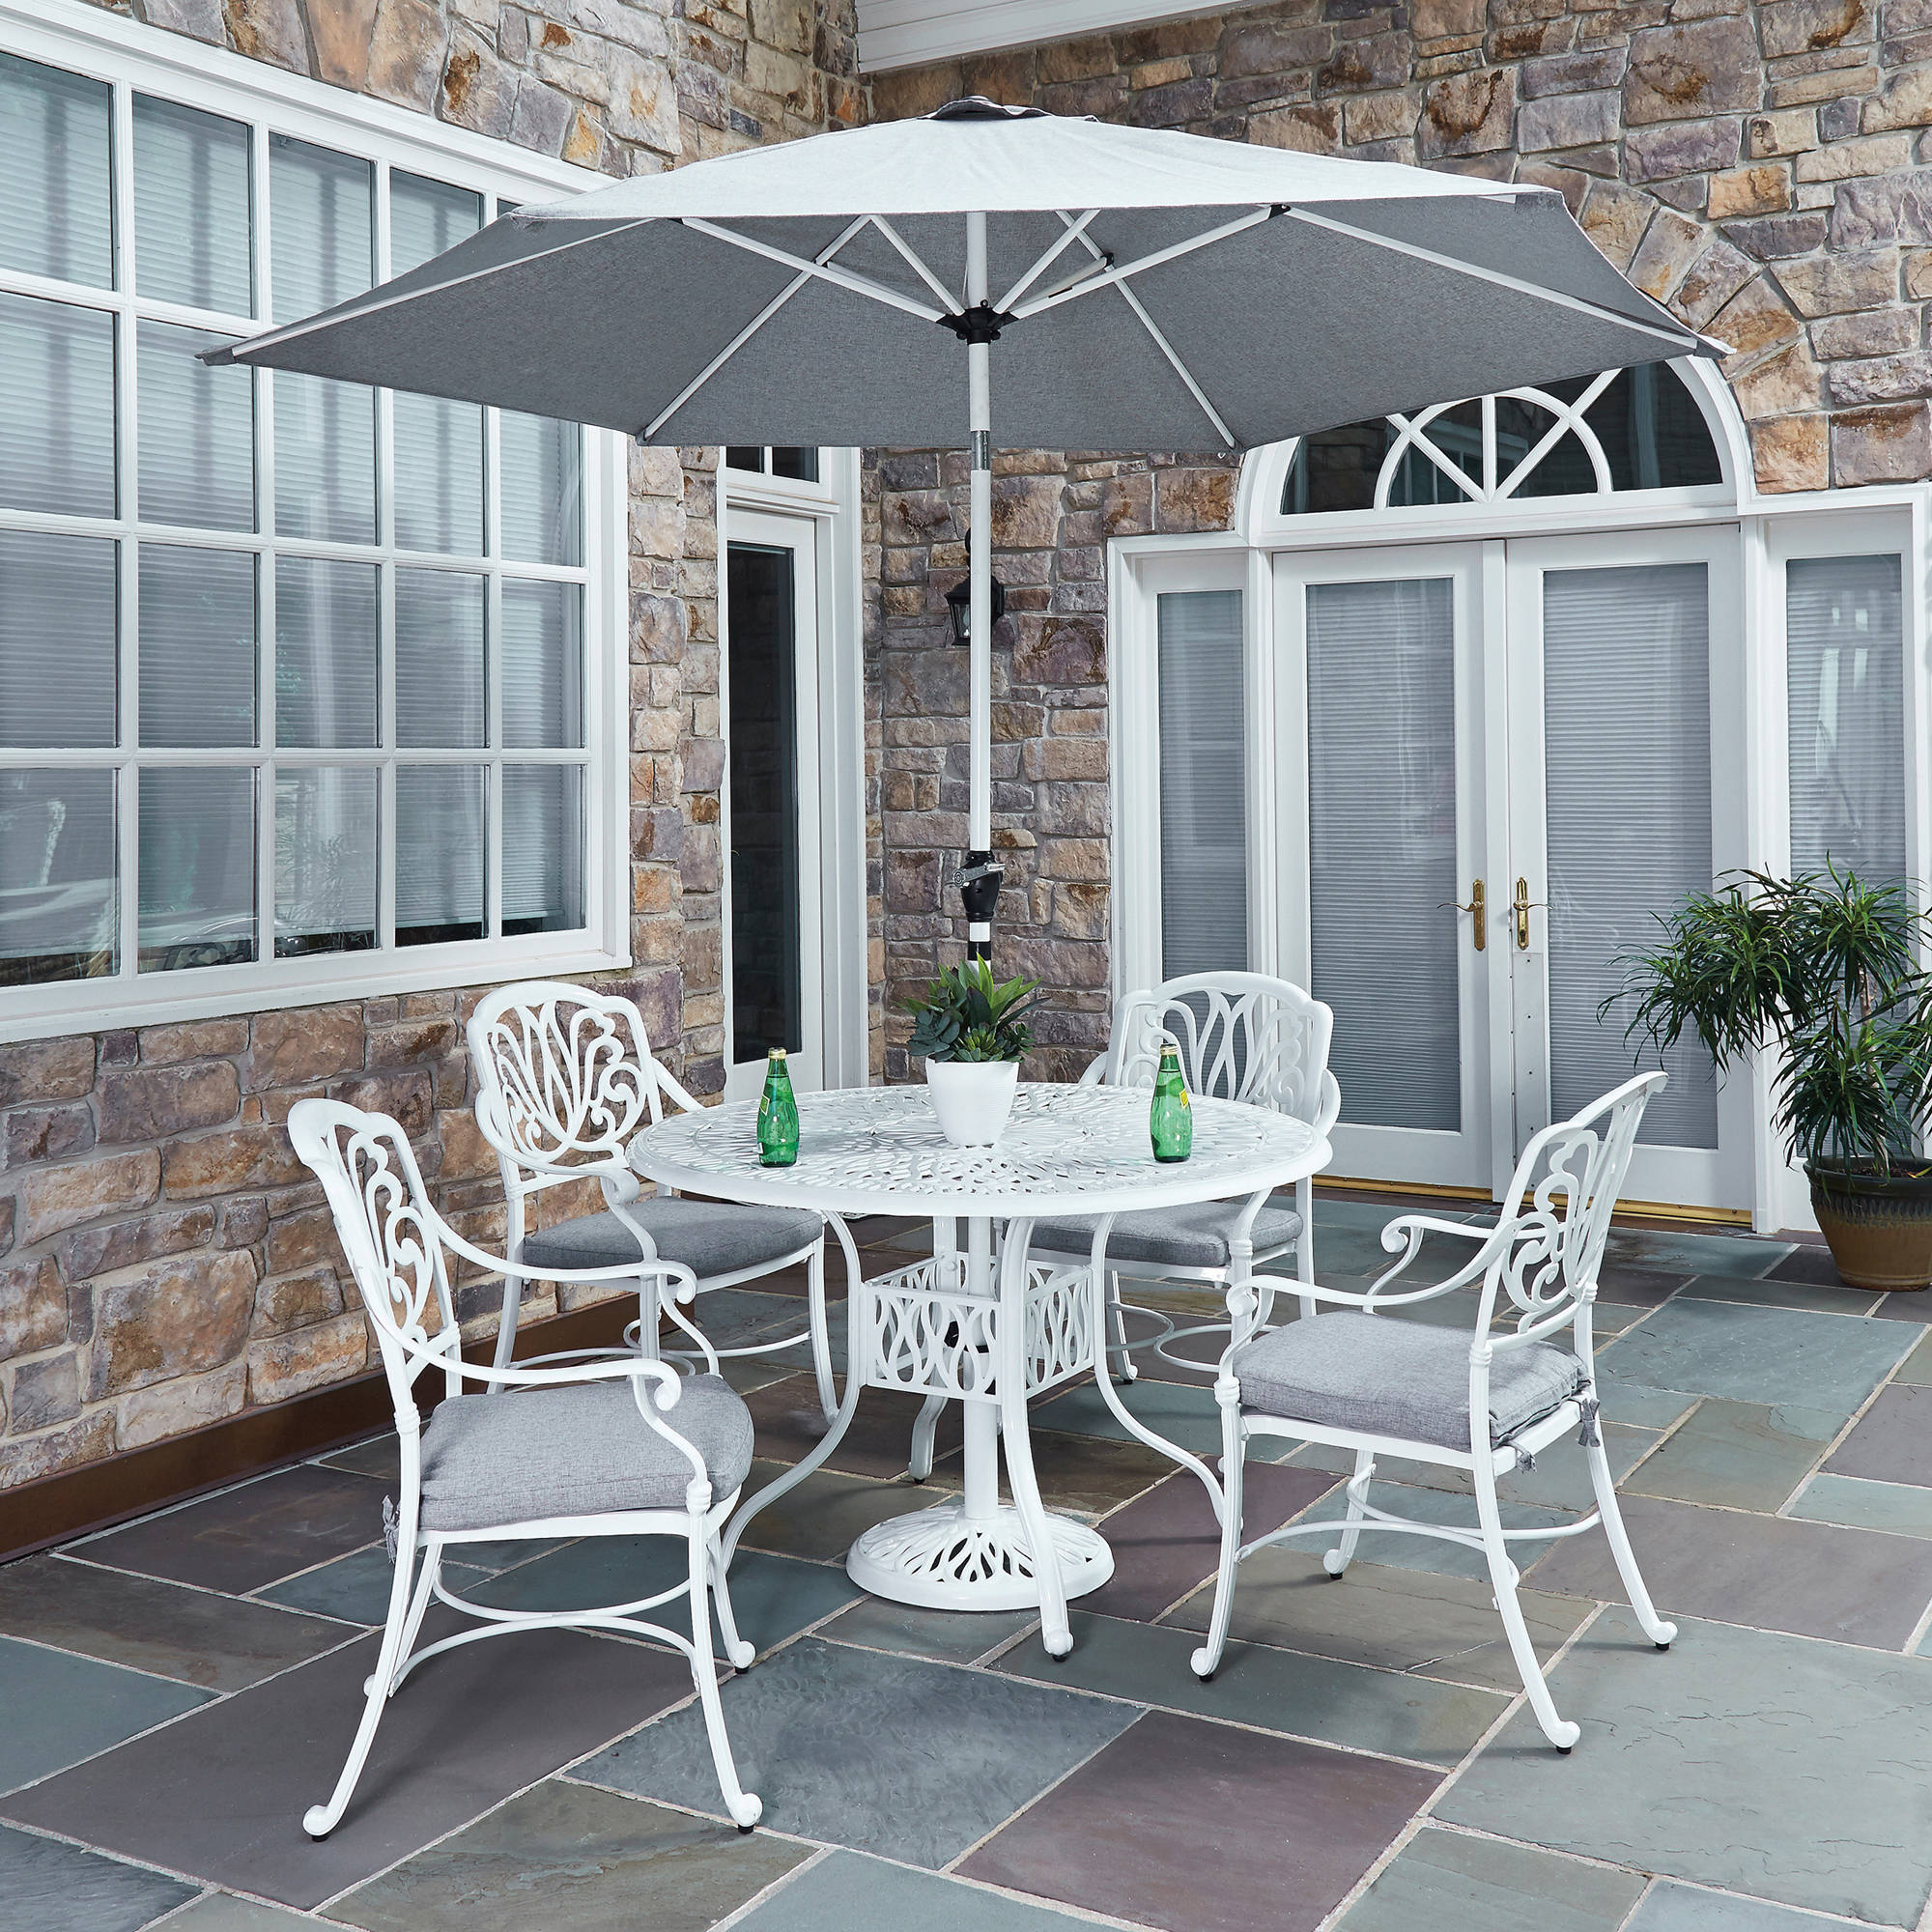 Floral Blossom 5-Pc Outdoor Dining Set with Umbrella